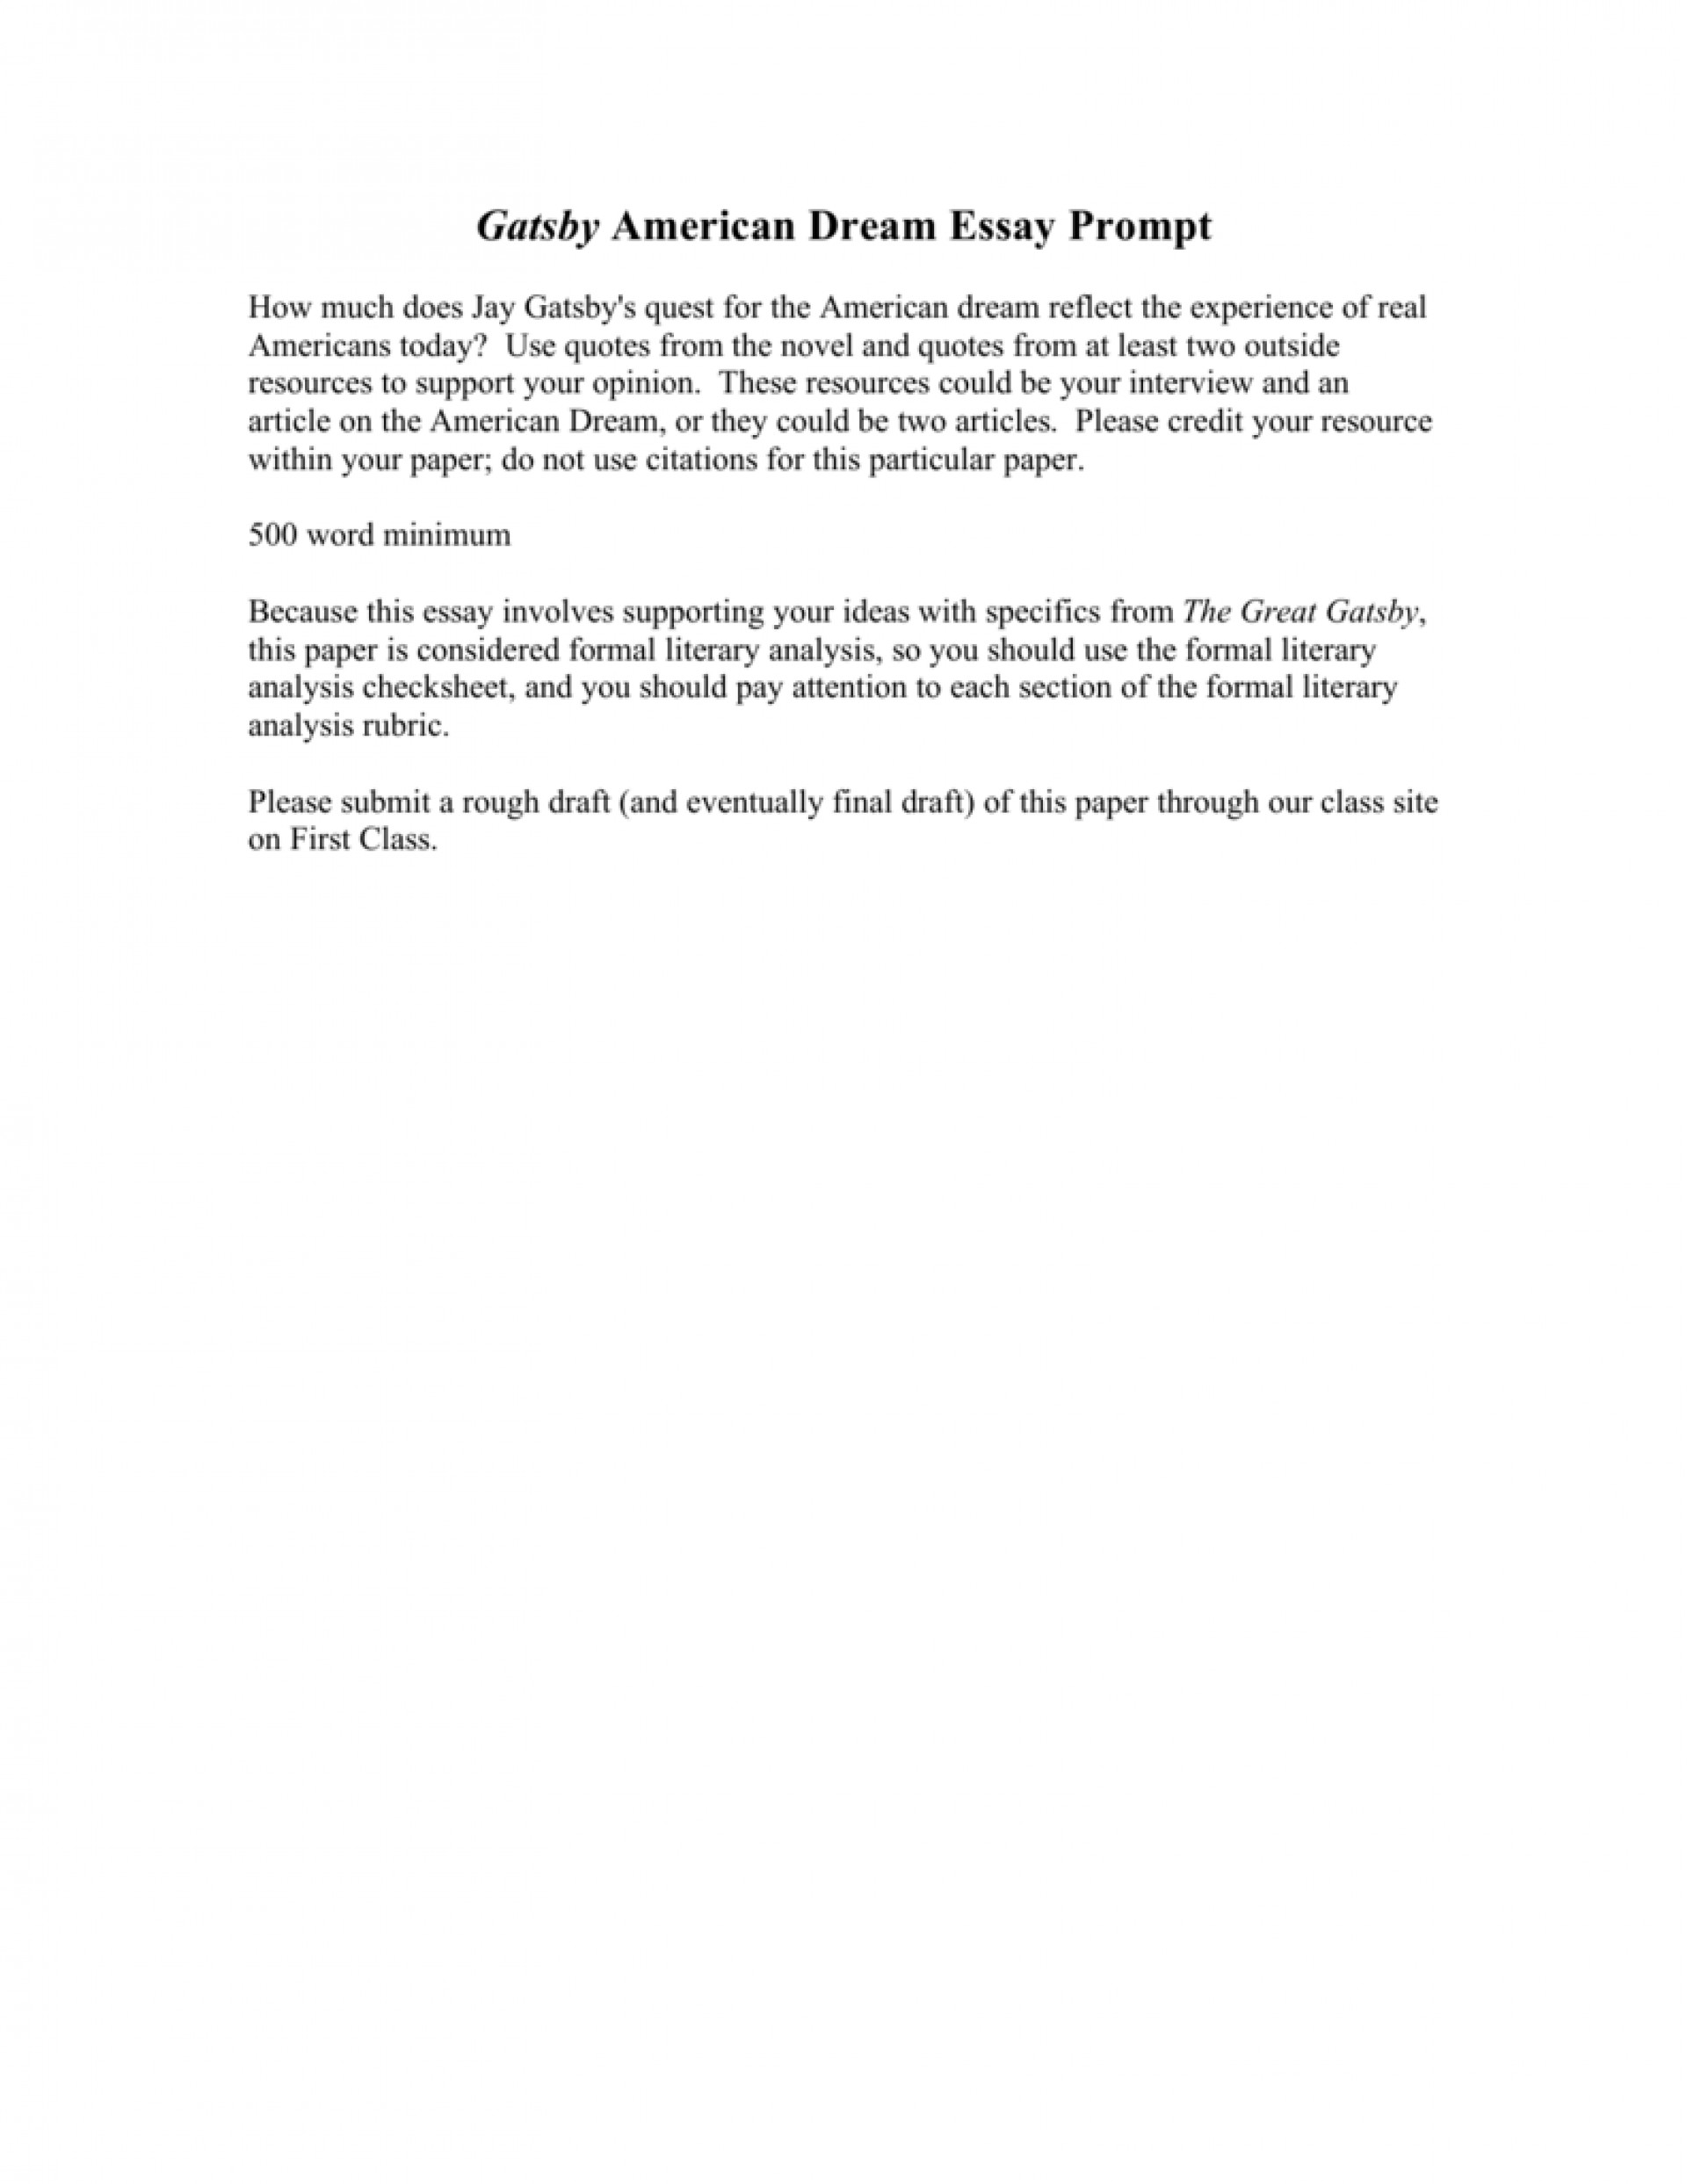 007 008810006 1 Essay Example Great Gatsby American Fantastic Dream Conclusion The Pdf Free 1920